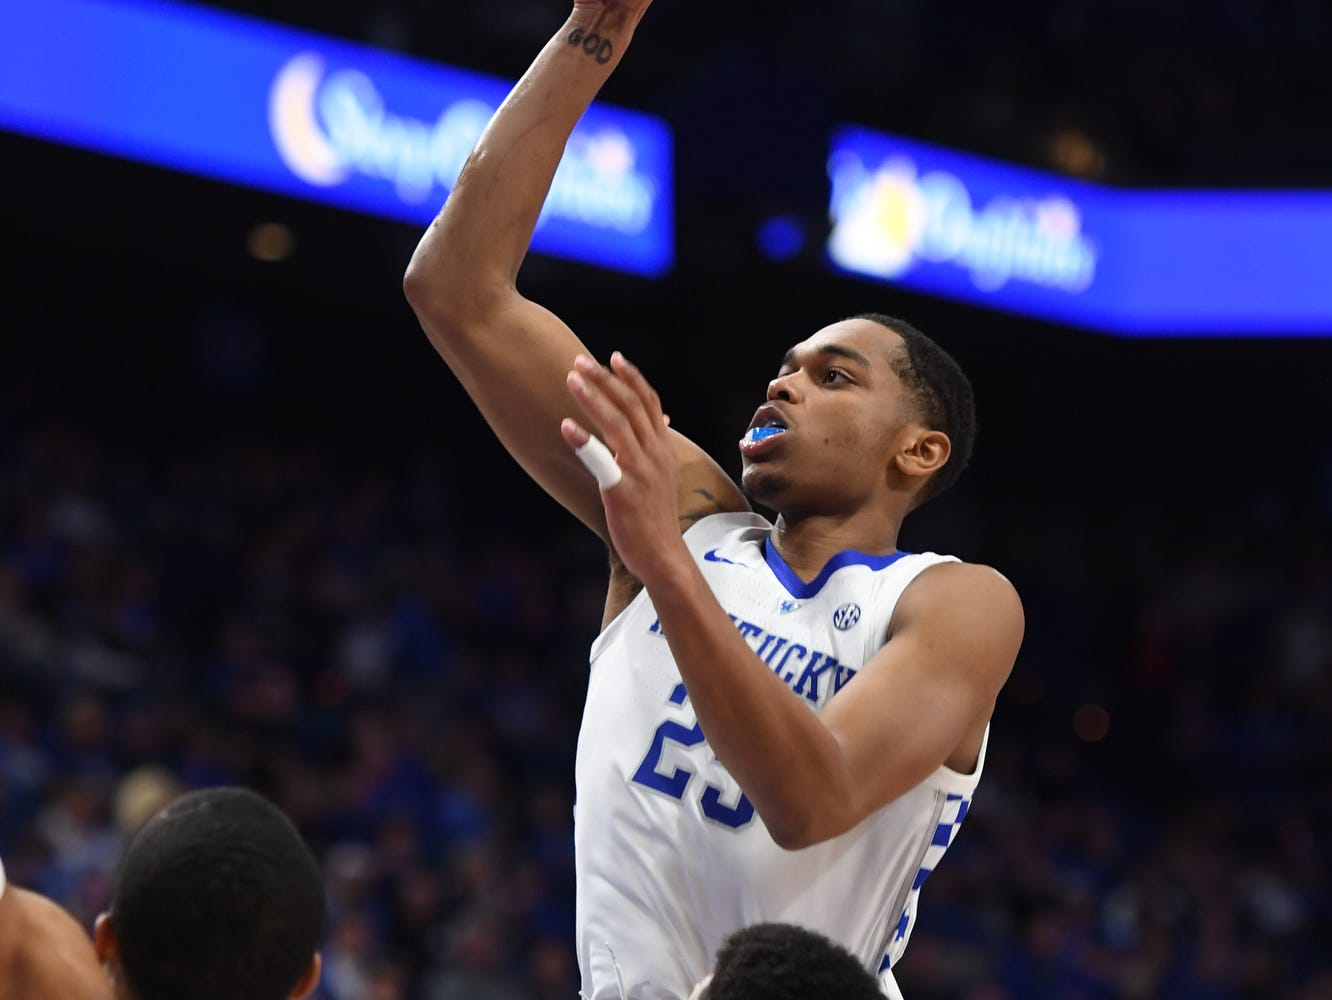 PJ Washington puts up the ball during the University of Kentucky basketball game against Indiana University of Pennsylvania at Rupp Arena on Friday, Nov. 2, 2018.